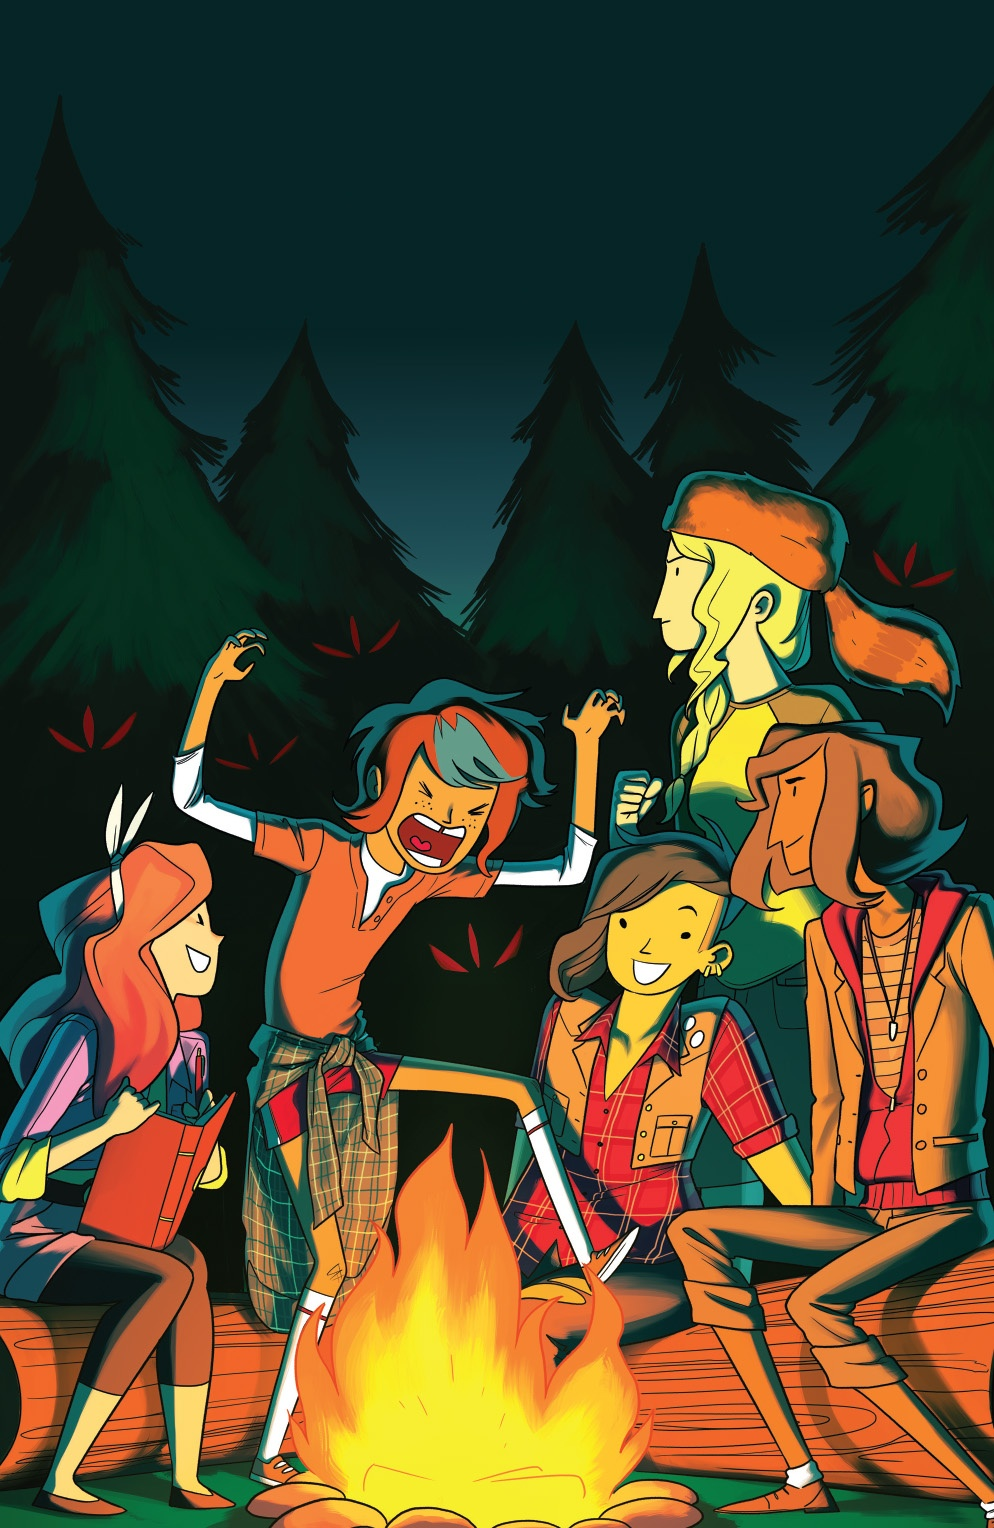 The Mary Sue Exclusive: Lumberjanes #4